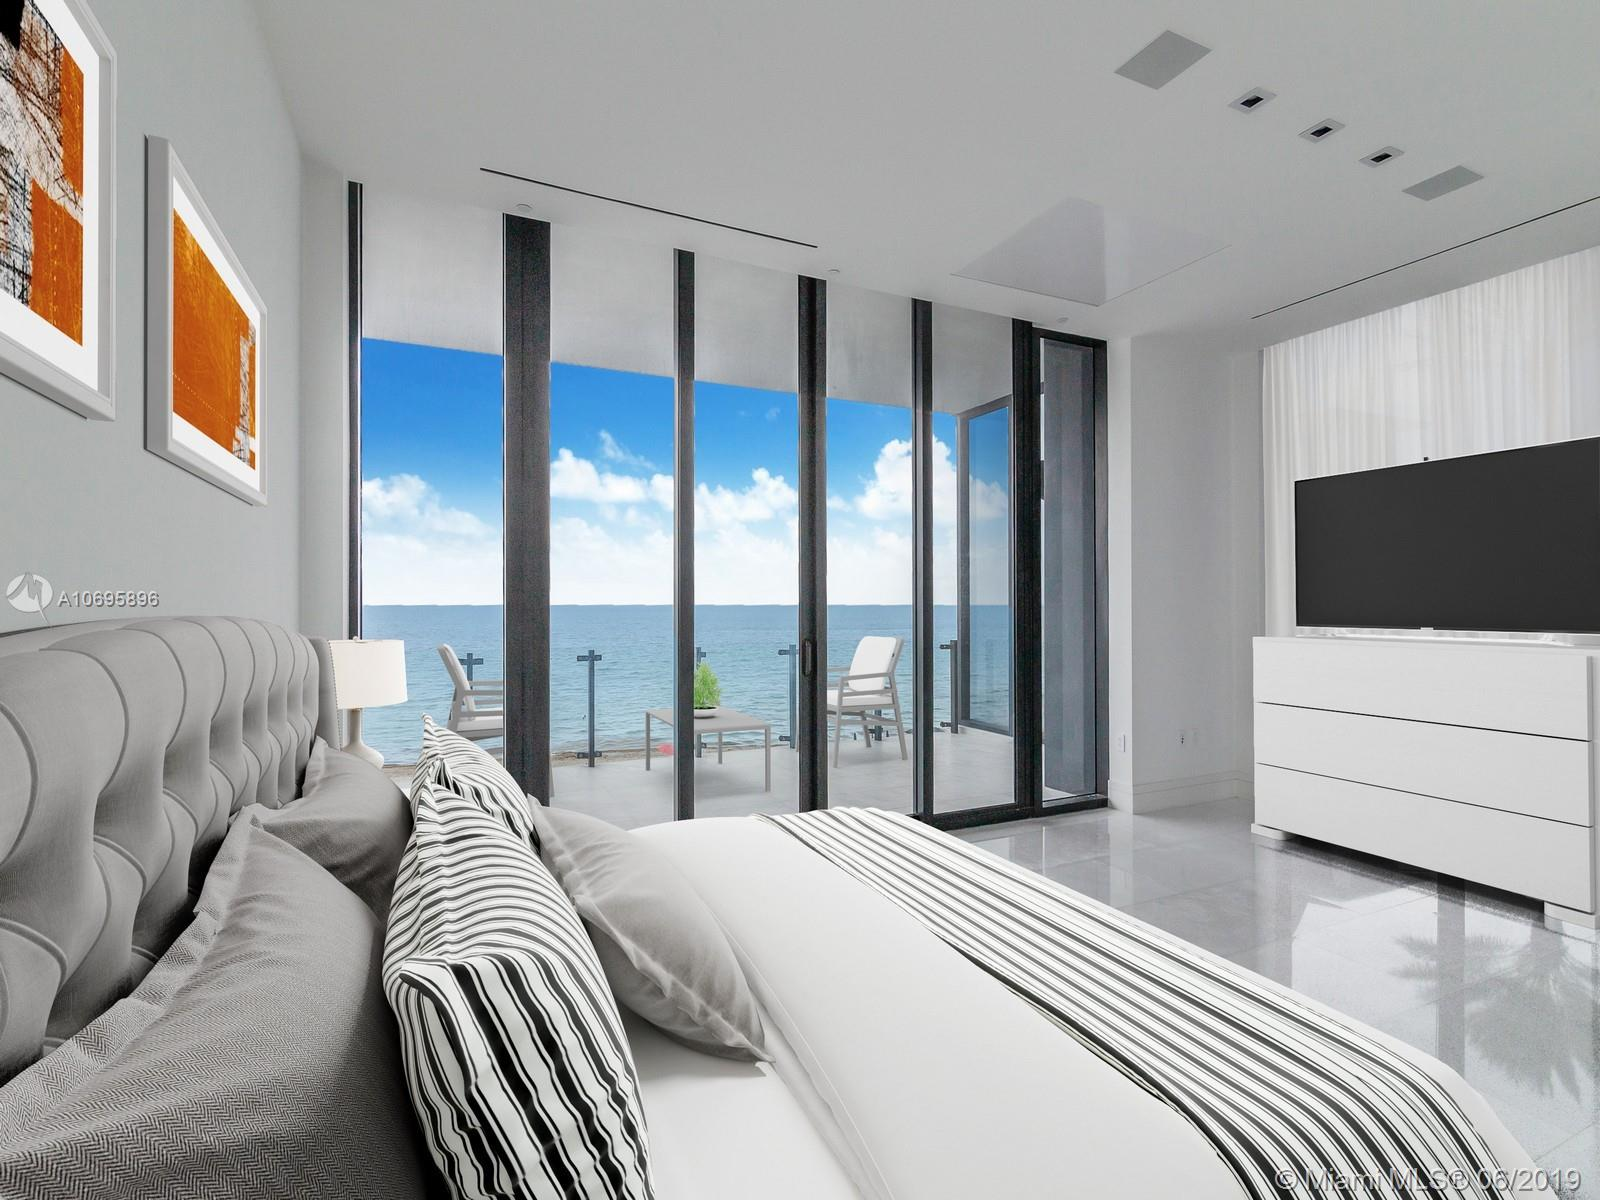 Fabulous ocean views at exclusive MUSE residence. Highlights include private ocean view ,outdoor grill, Large ultra modern sleek TV for your living space. A Large crystal clear television that disappears into your master bath mirror. A biometric safe in the master suite that opens for you and only you. intelligent camera system to enhance security at entry -Sub-Zero dual temperature winestorage for up to 148 bottles Kitchens are accompanied by exquisite unique marble countertops and top-of-the-line SubZero/Wolf appliances taking your culinary experience to a whole new level. Smart iHome System: Each residence offers unparalleled efficiency through a cutting-edge smart home technology experience. Includes integrated audio, video, lighting, security and shadessystems.